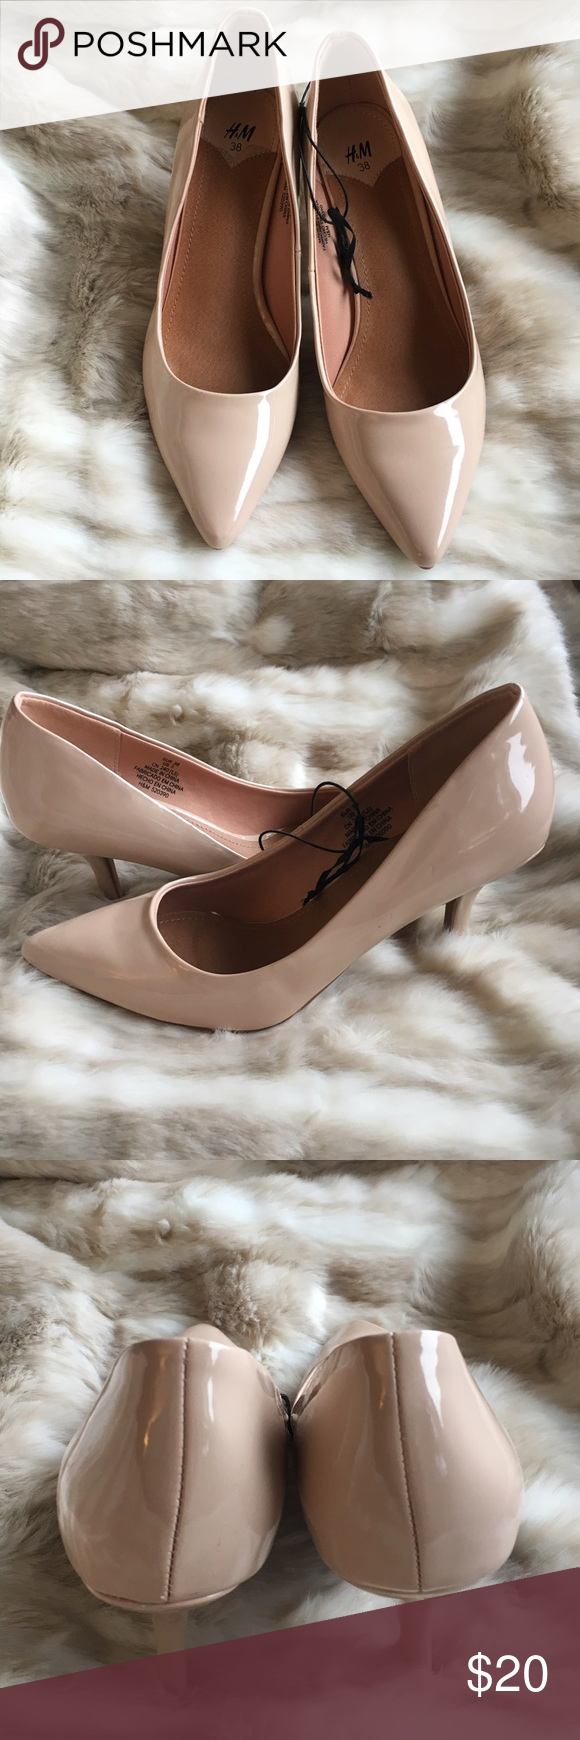 8b1eccf5ec H&M Nude Pumps NWOT - 3 inch heel in a neutral color that goes with  everything. H&M Shoes Heels